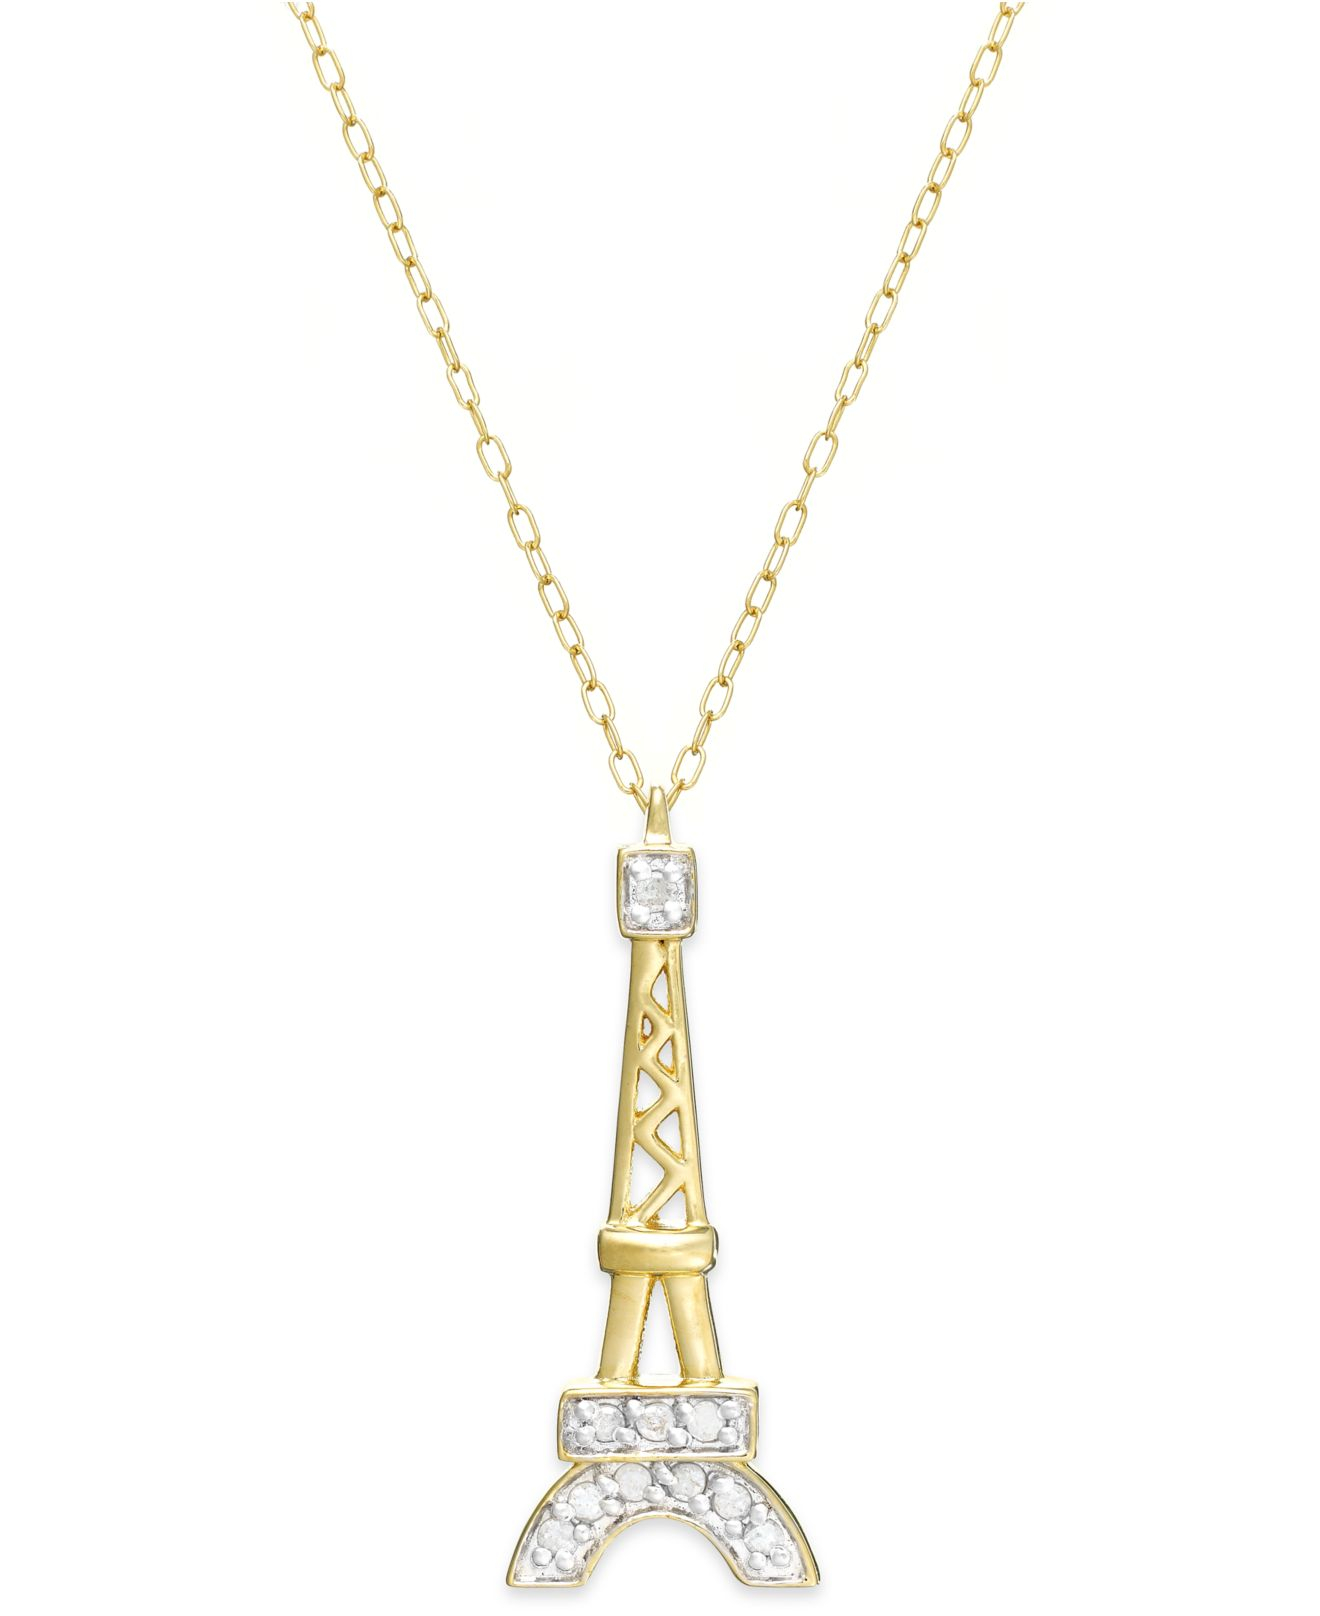 Lyst macys diamond eiffel tower pendant necklace in 18k gold over gallery aloadofball Image collections